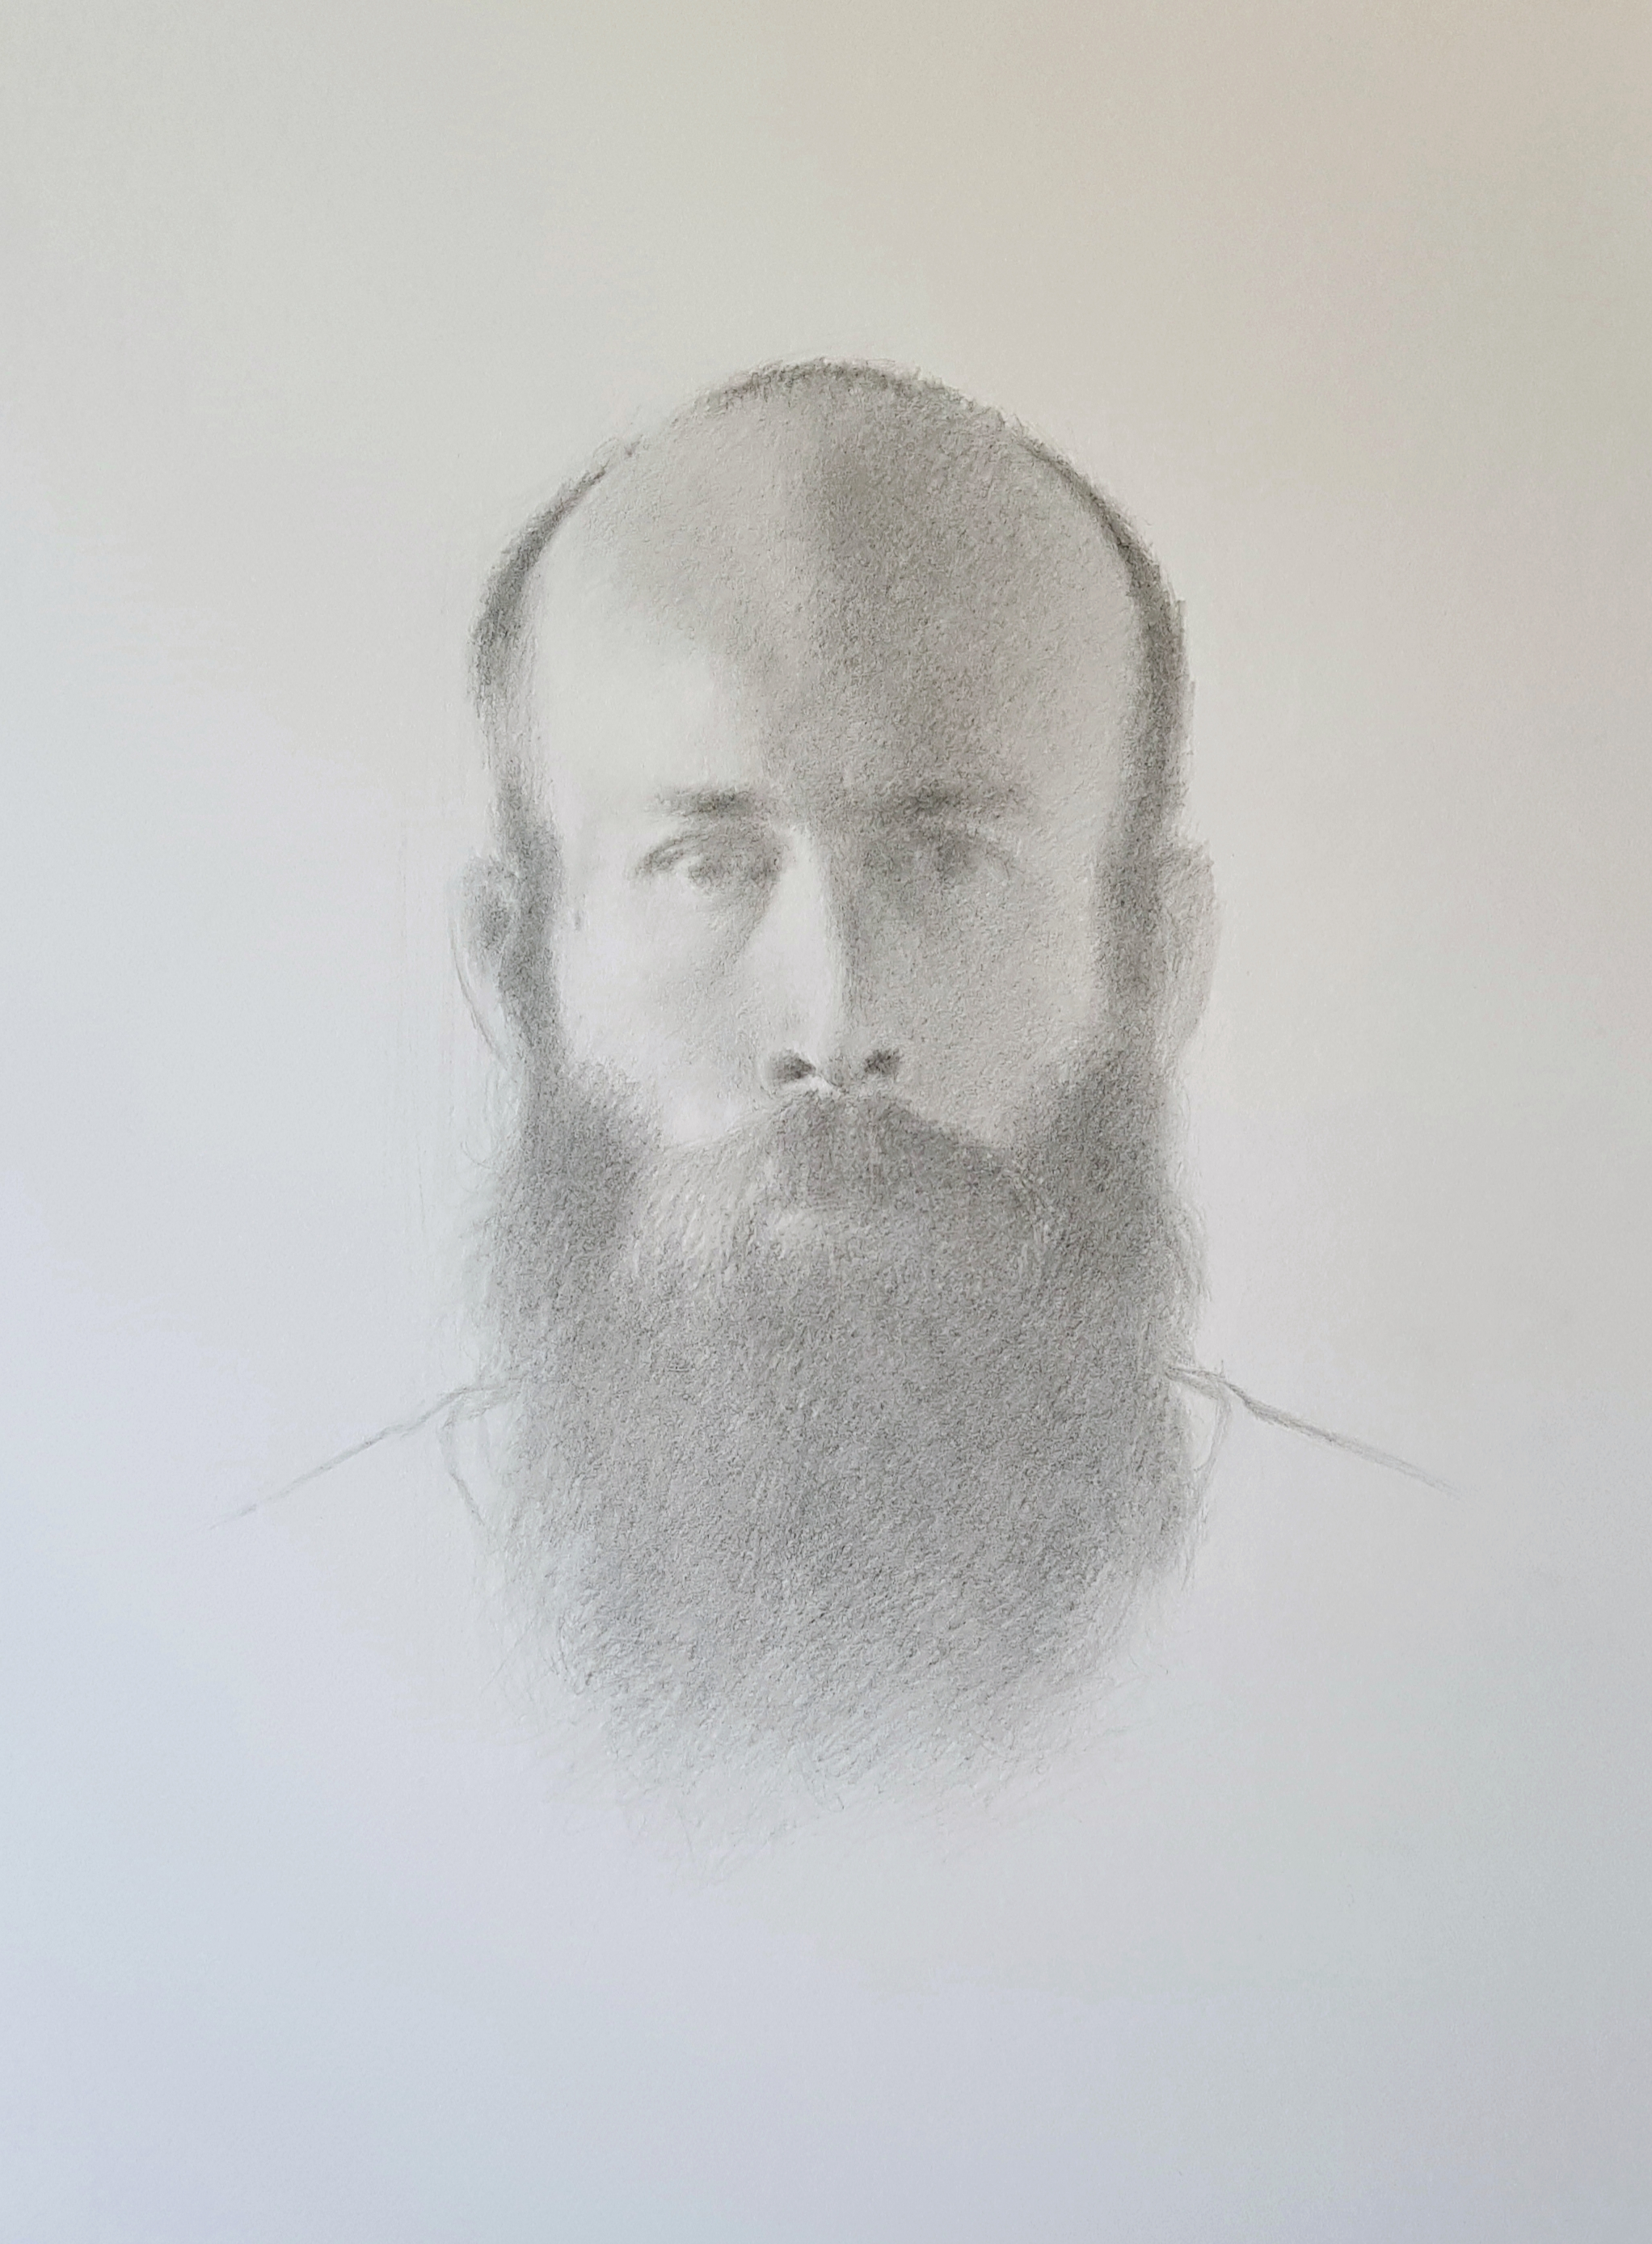 Self portrait, Pencil on paper, 2019